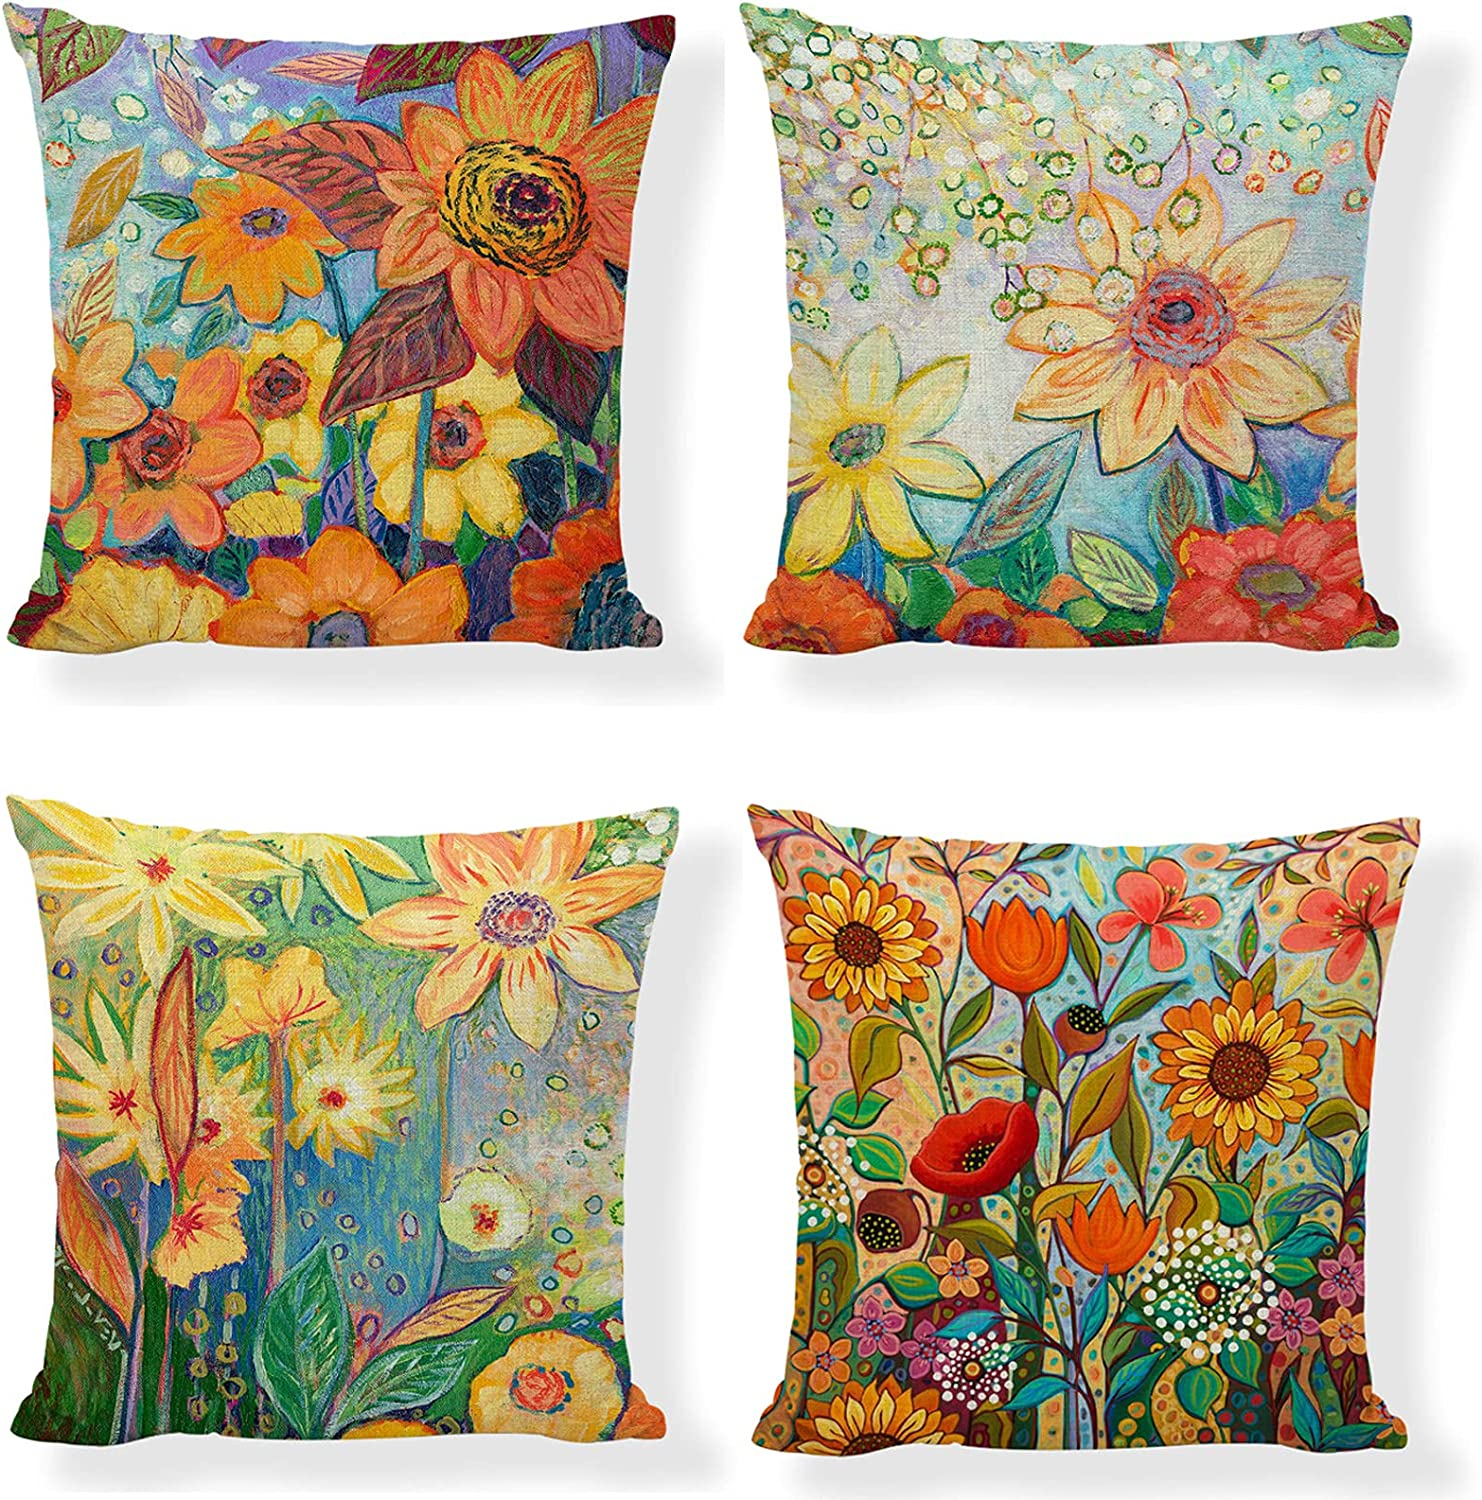 Summer Throw Pillow Covers 18x18 Inch of Farmhouse Dercora Set 4 Latest Max 58% OFF item